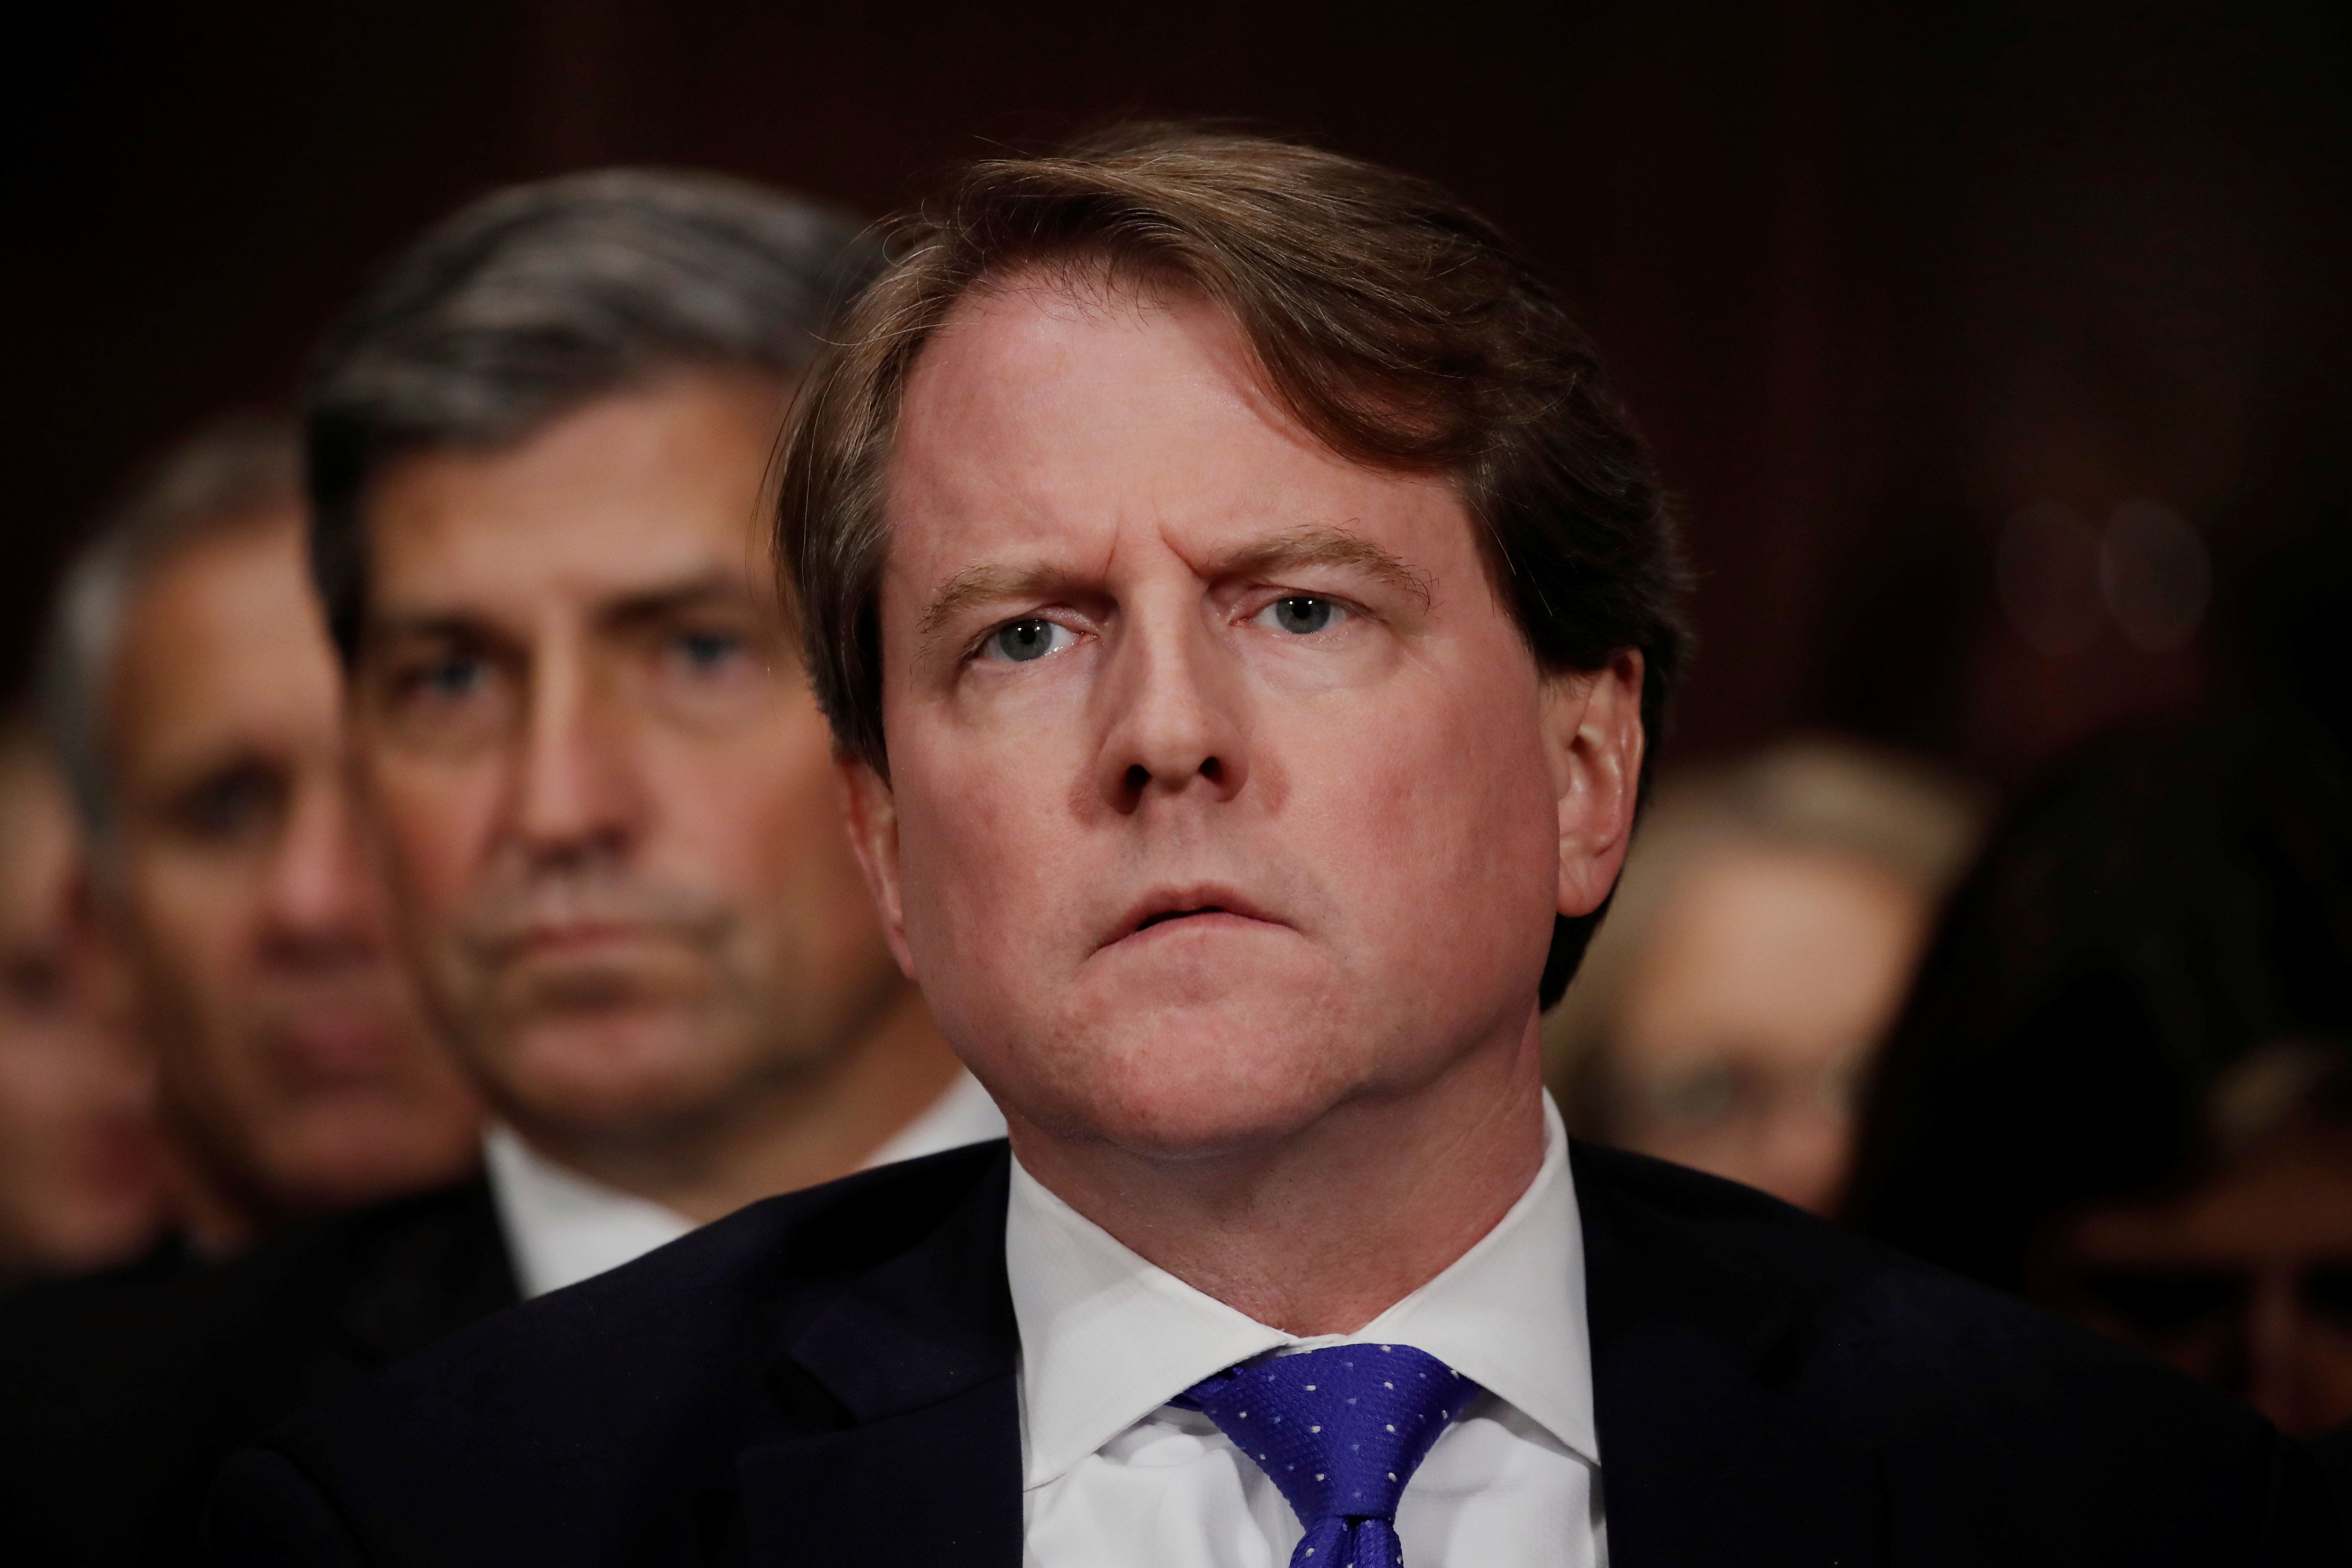 White House counsel Don Mcgahn listens to U.S. Supreme Court nominee Brett Kavanaugh testify before a Senate Judiciary Committee confirmation hearing on Capitol Hill in Washington, U.S., September 27, 2018. REUTERS/Jim Bourg